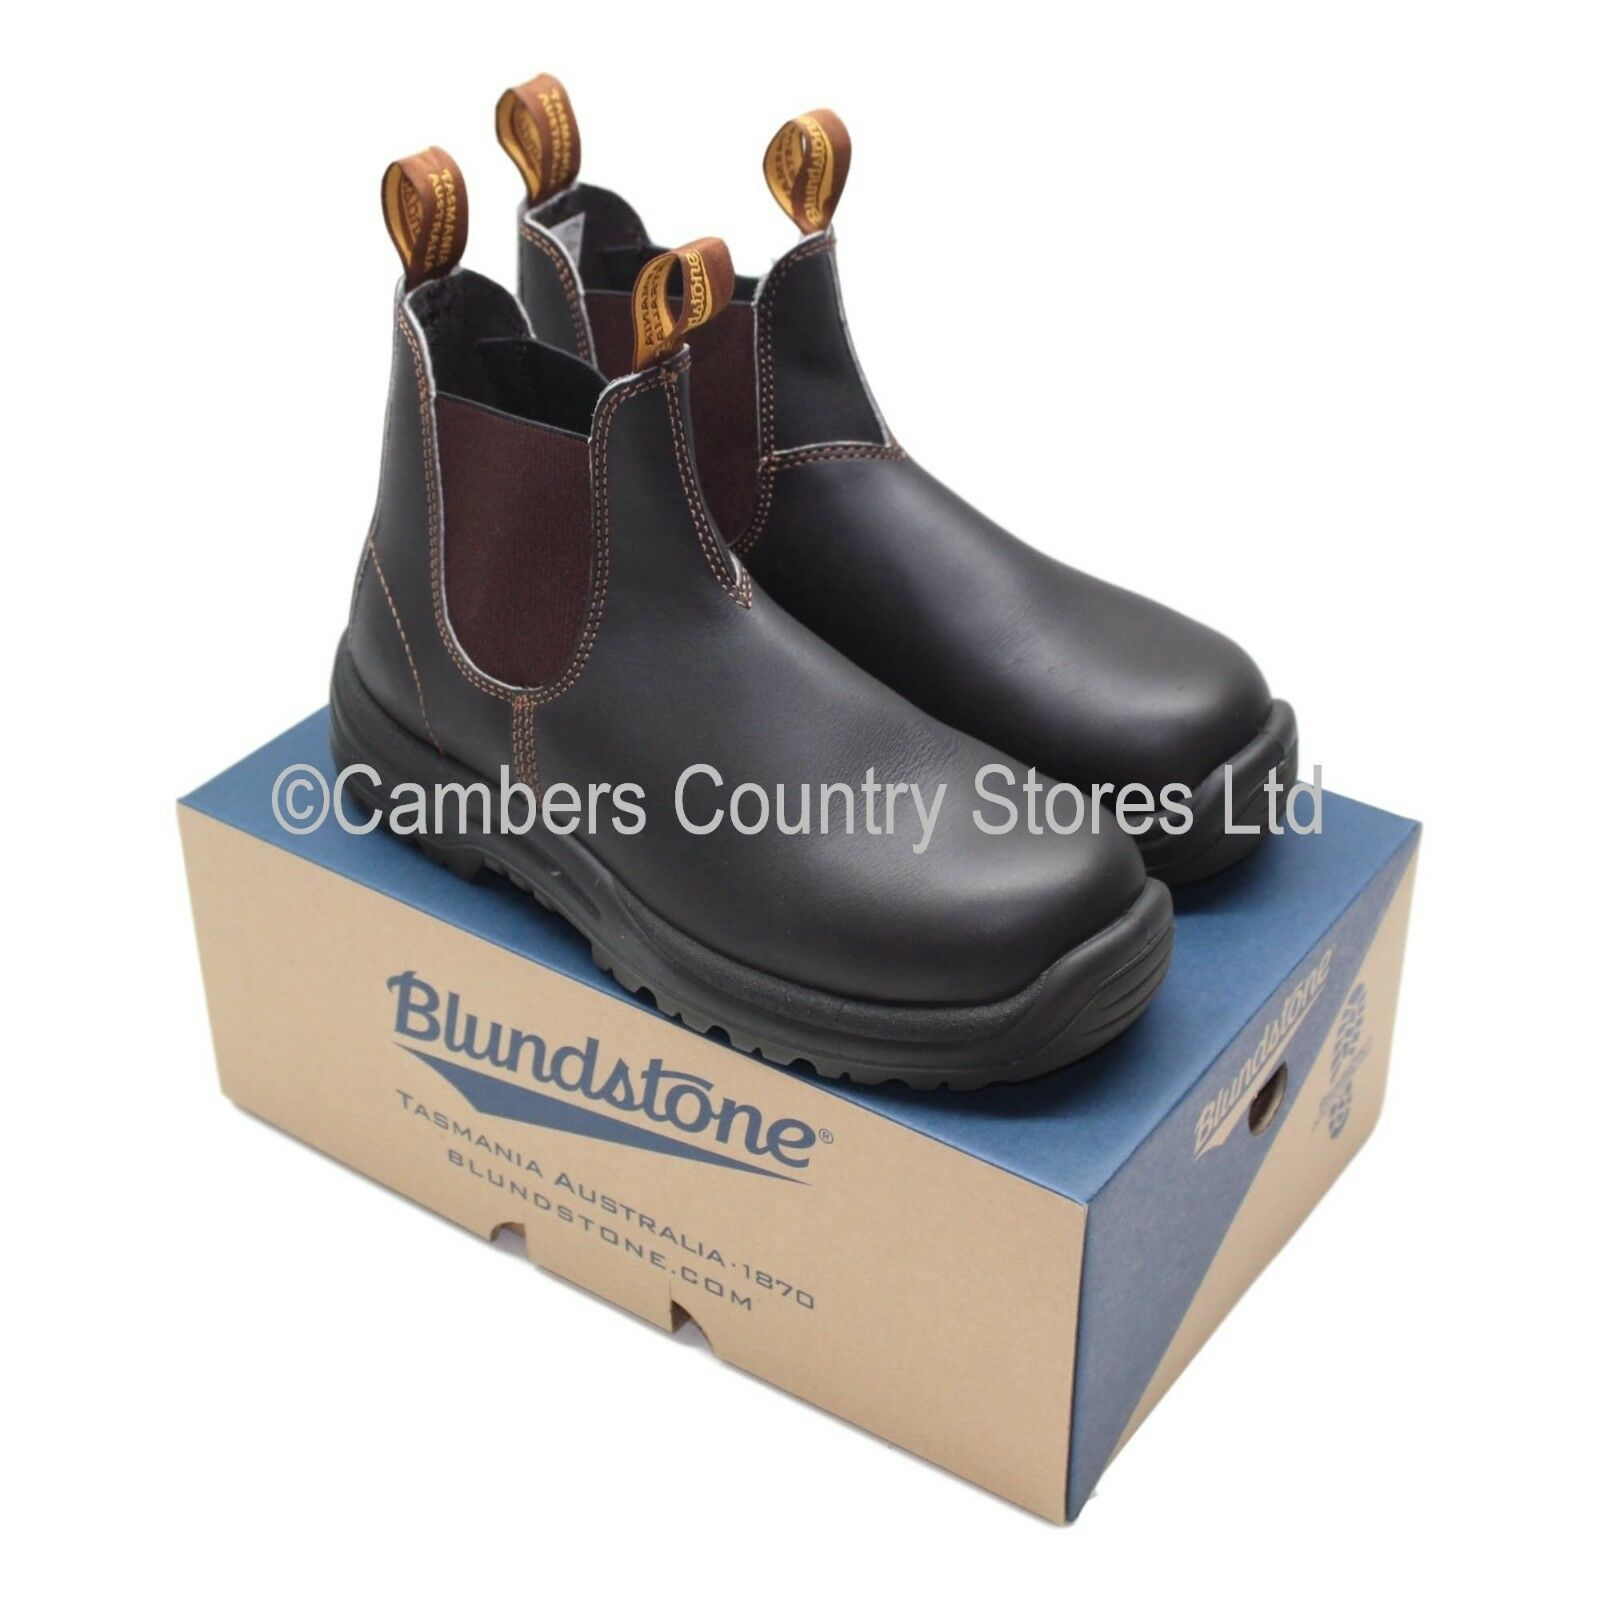 NEW Quality Australian bluendstone 192 Safety Dealer Work Boots Brown Size Choice